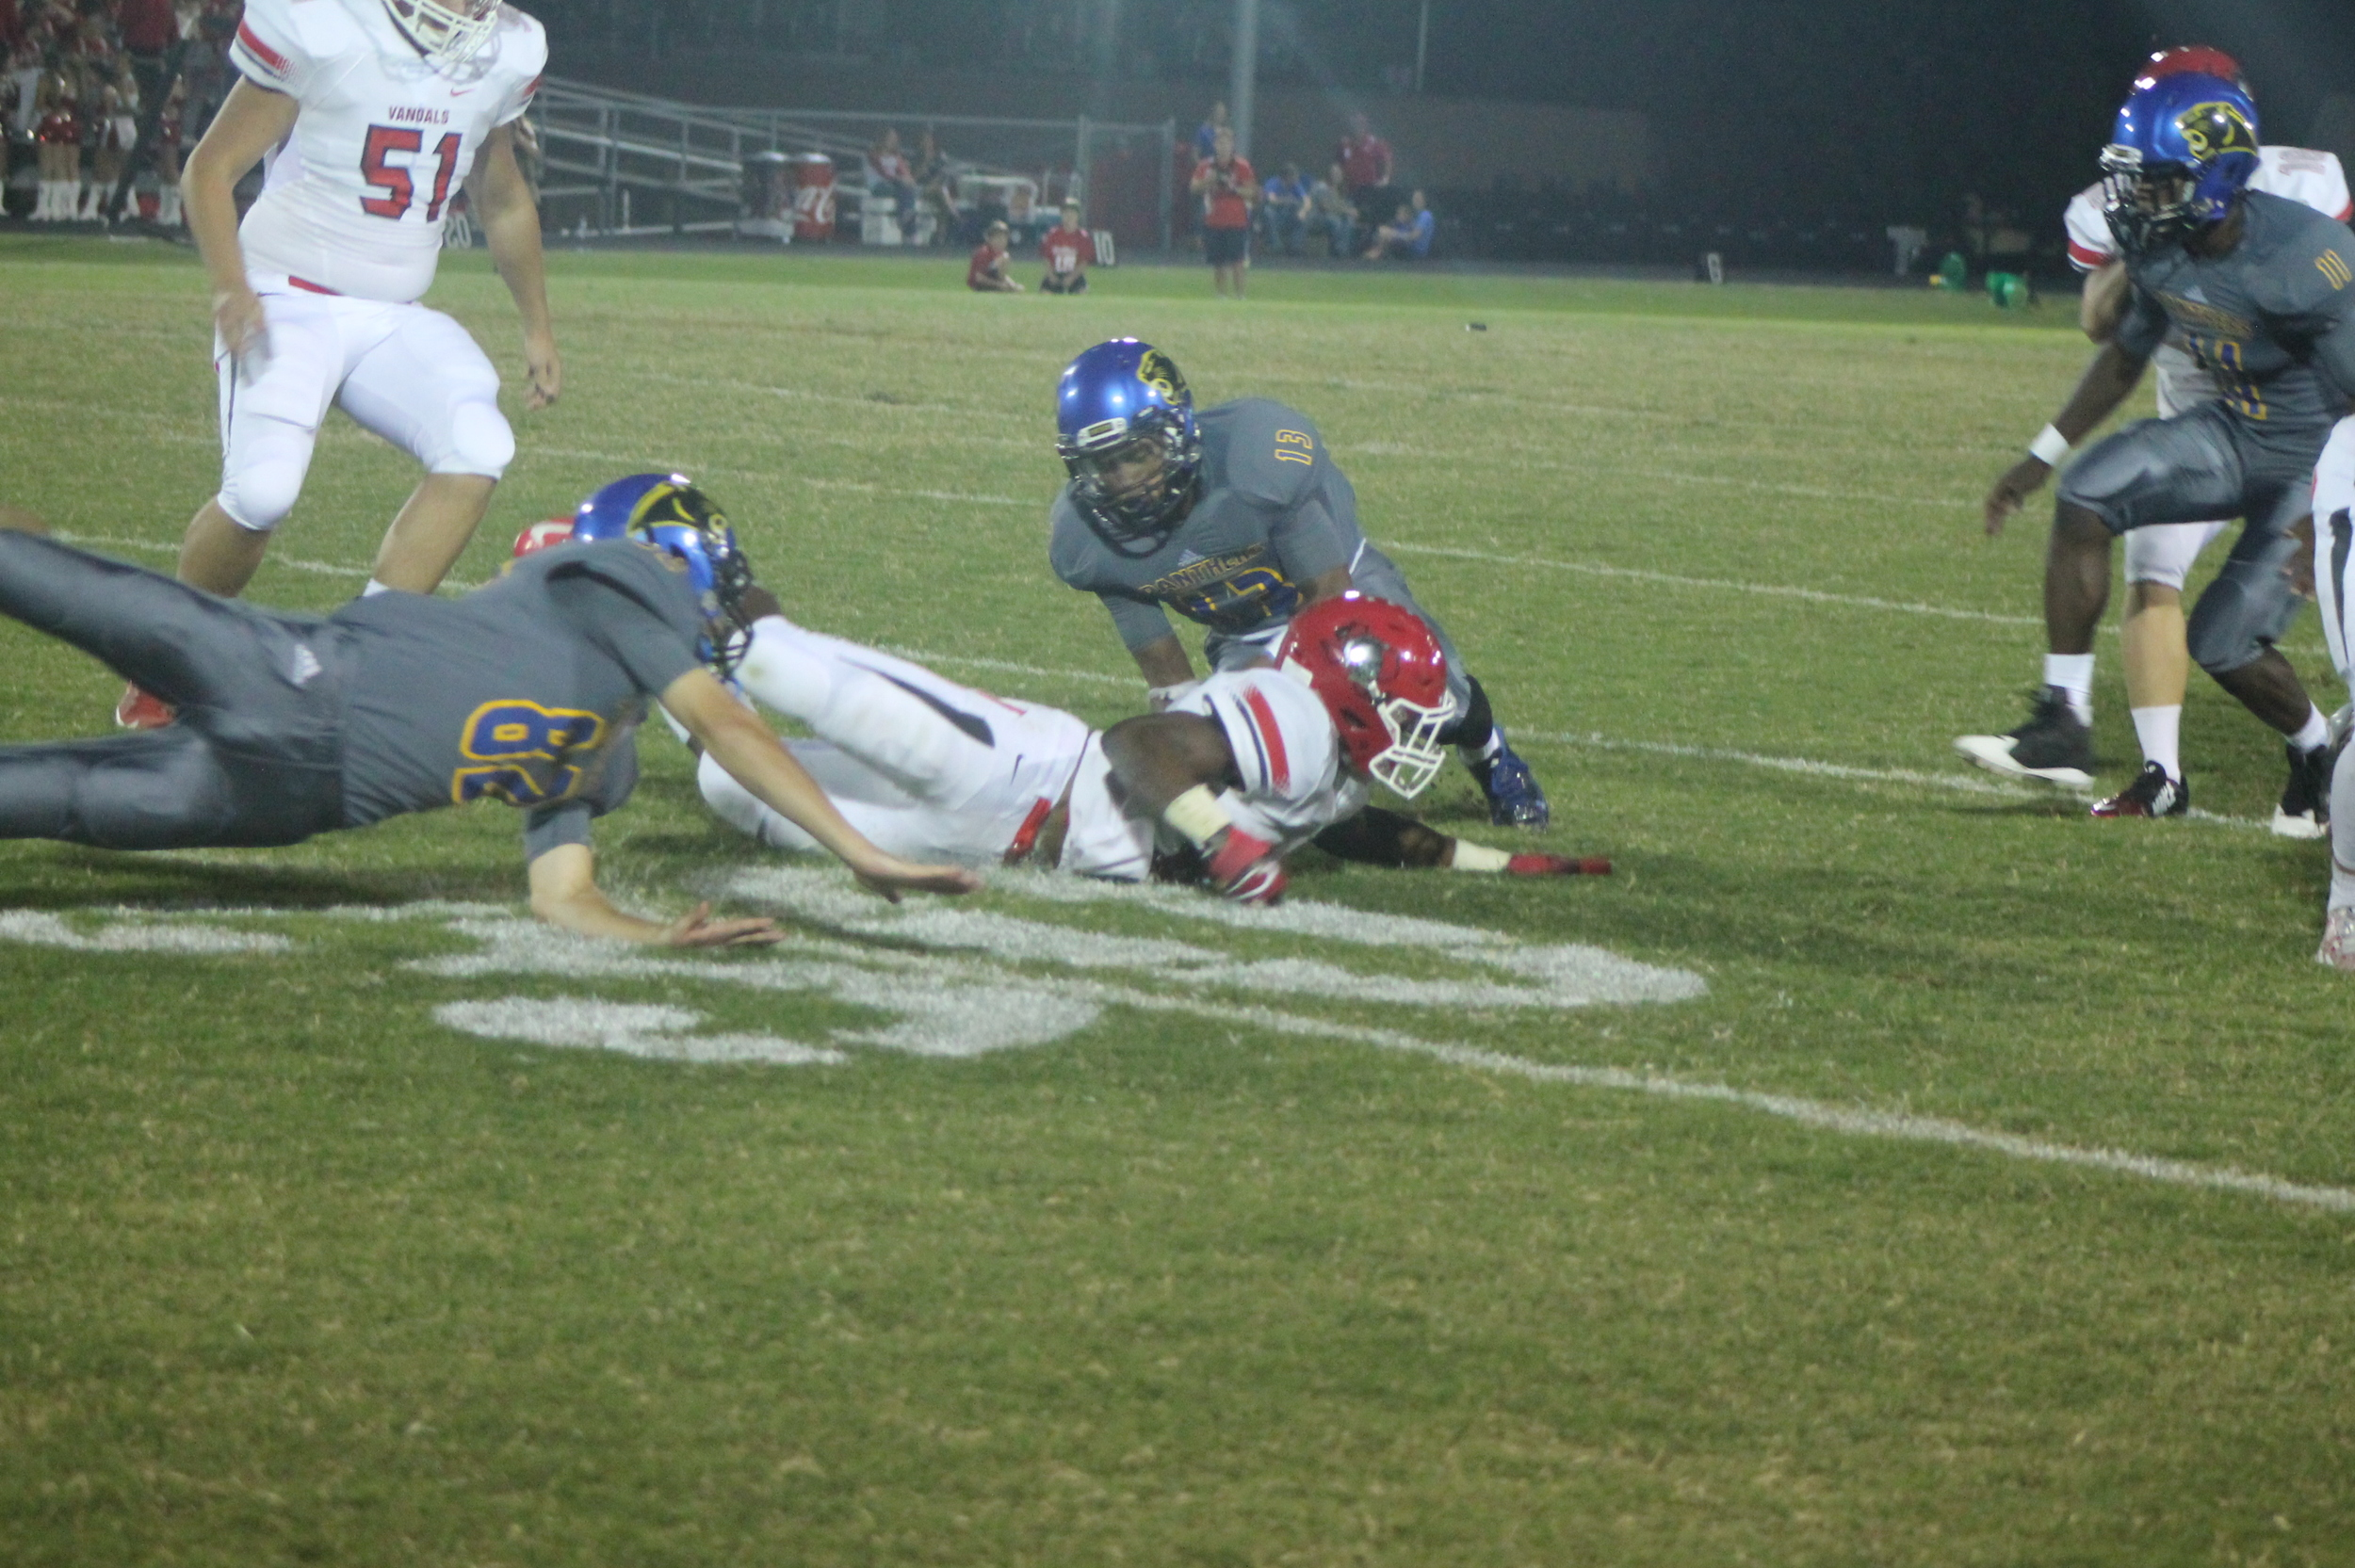 (Photo by Maddy Routon) Seybian Holt (13) recovers a fumbled kickoff while Jack Hill (82) goes diving in for the ball as well.